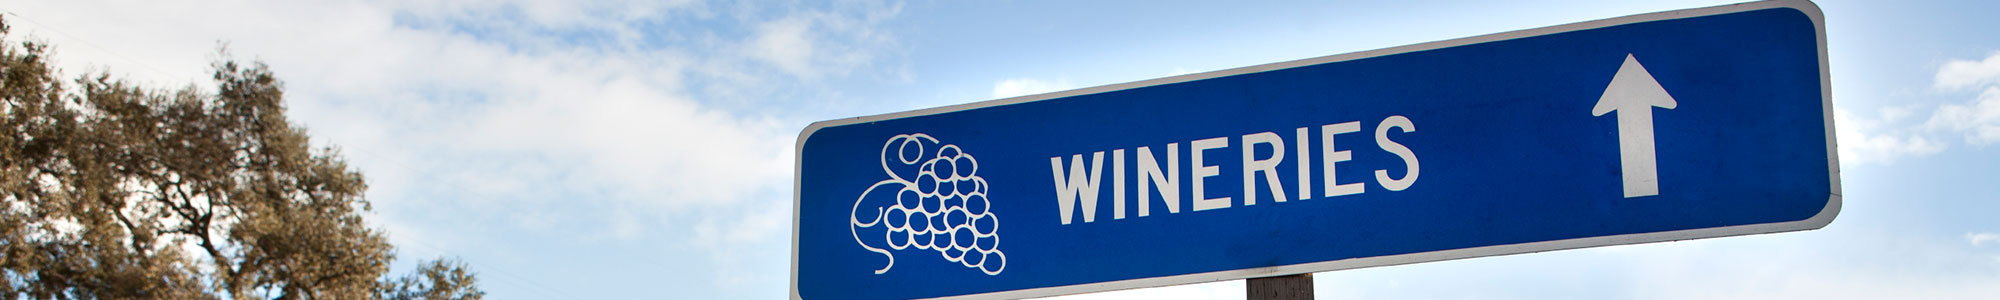 Wineries Road Sign